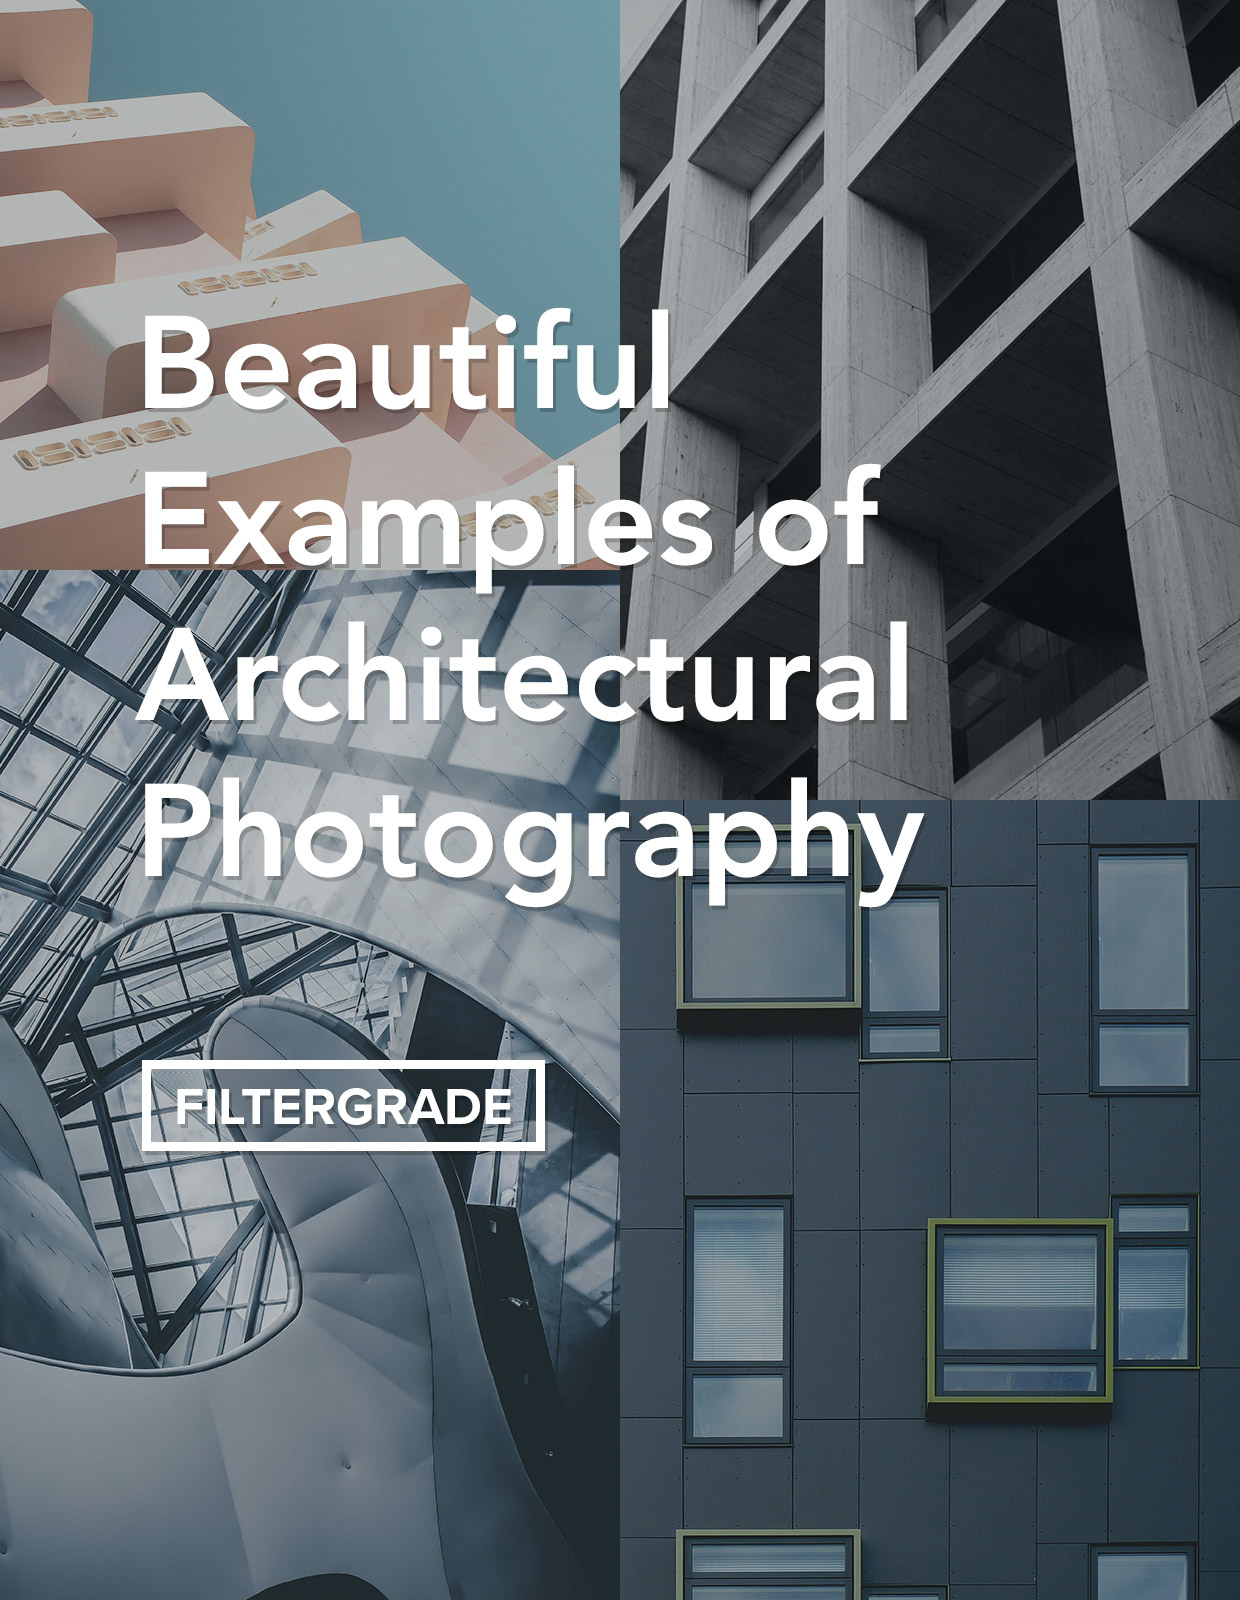 Beautiful examples of architectural photography.